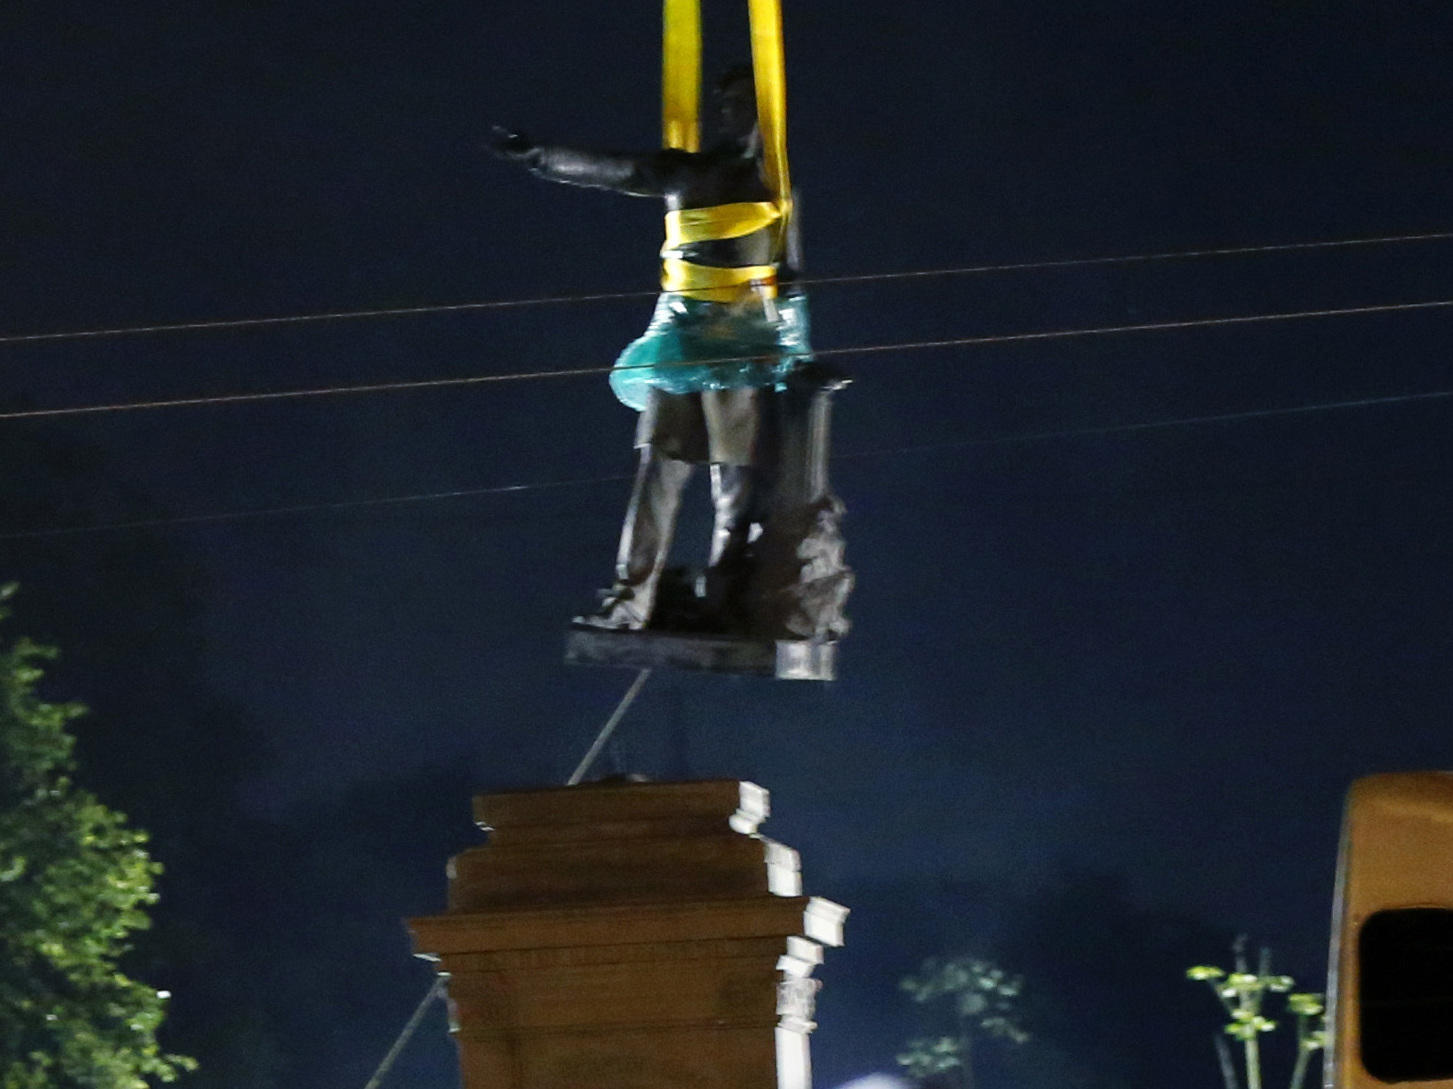 Jefferson Davis Statue No Longer Stands In New Orleans03:44